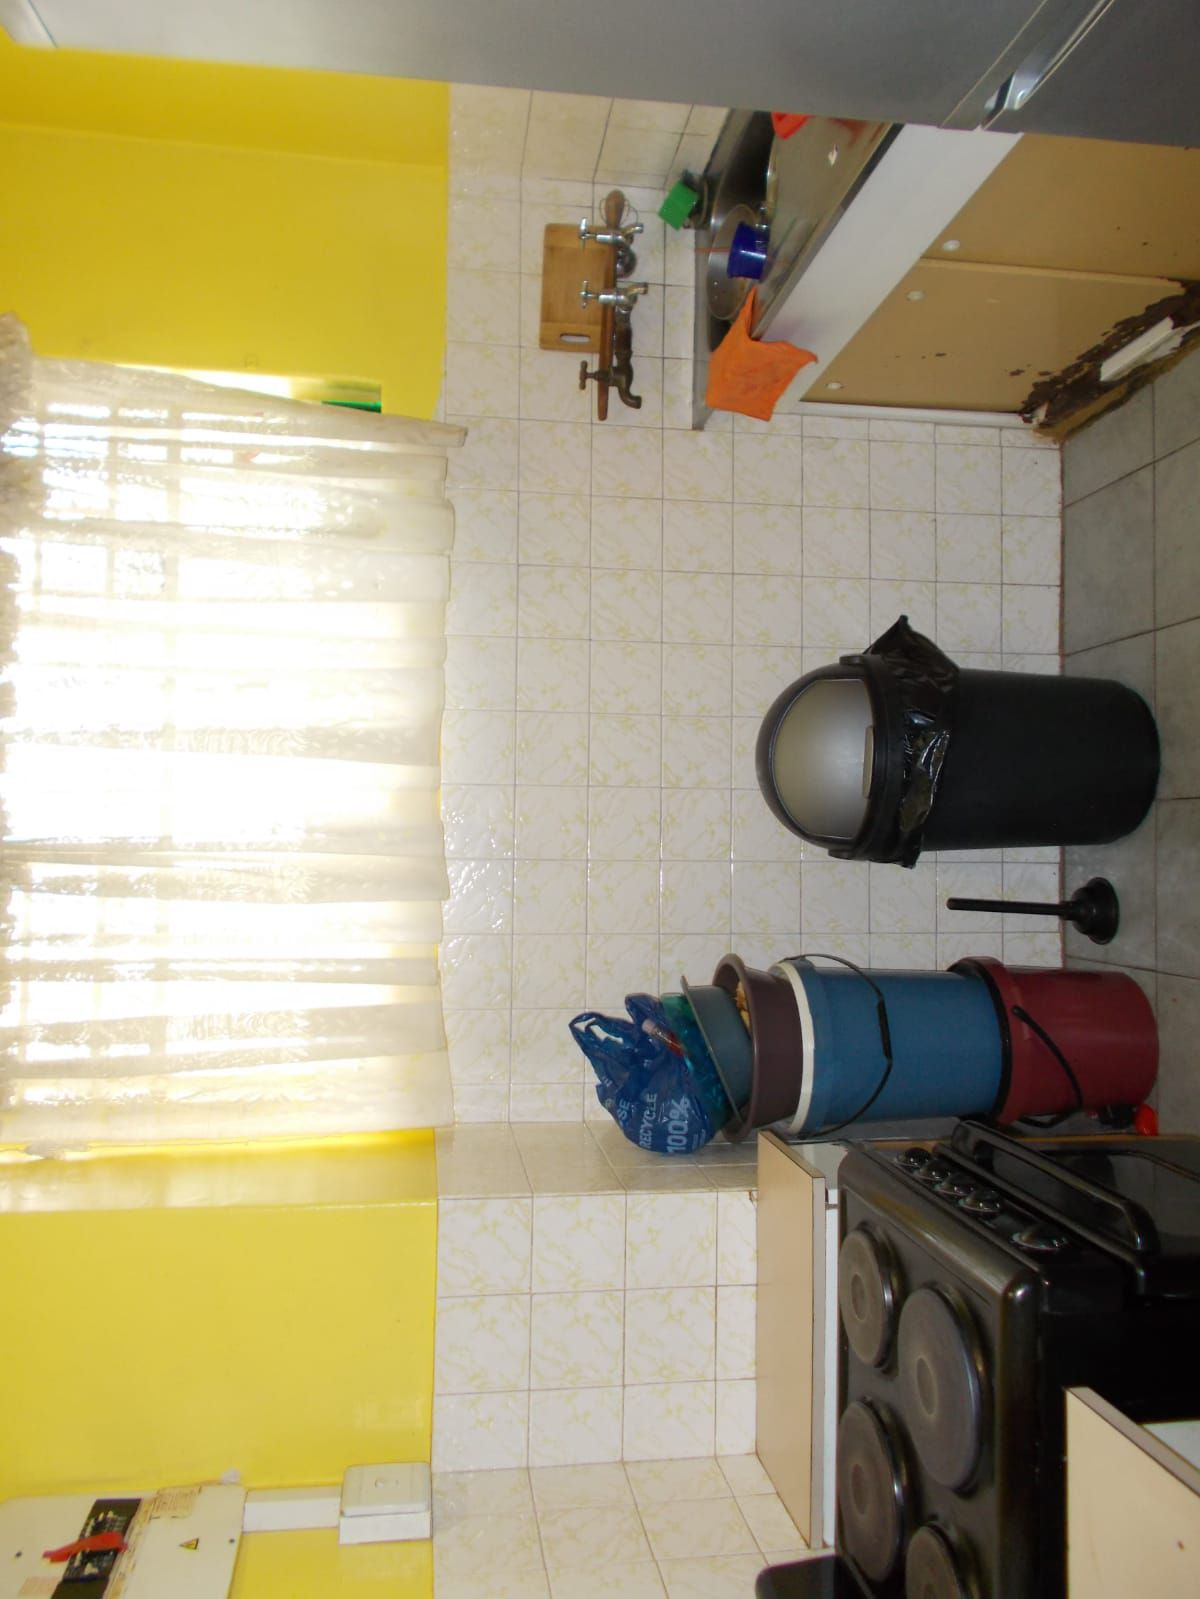 Apartment in Hillbrow - WhatsApp Image 2021-01-12 at 13.03.59.jpeg